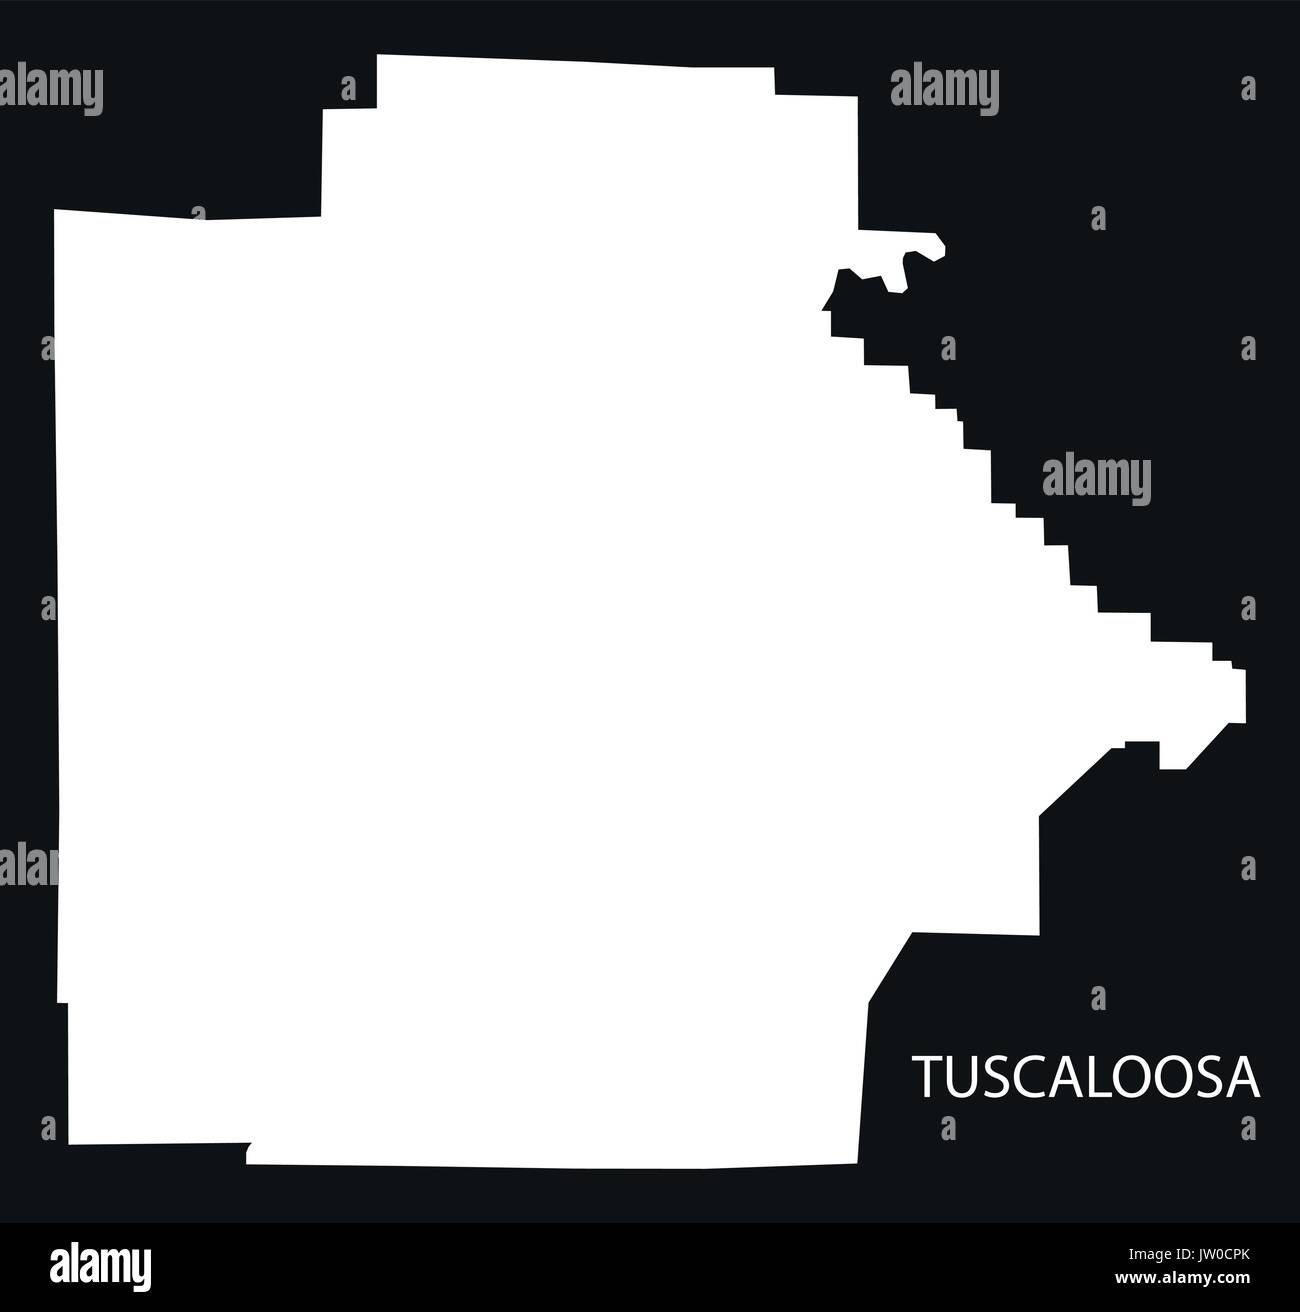 Tuscaloosa county map of Alabama USA black inverted illustration - Stock Image